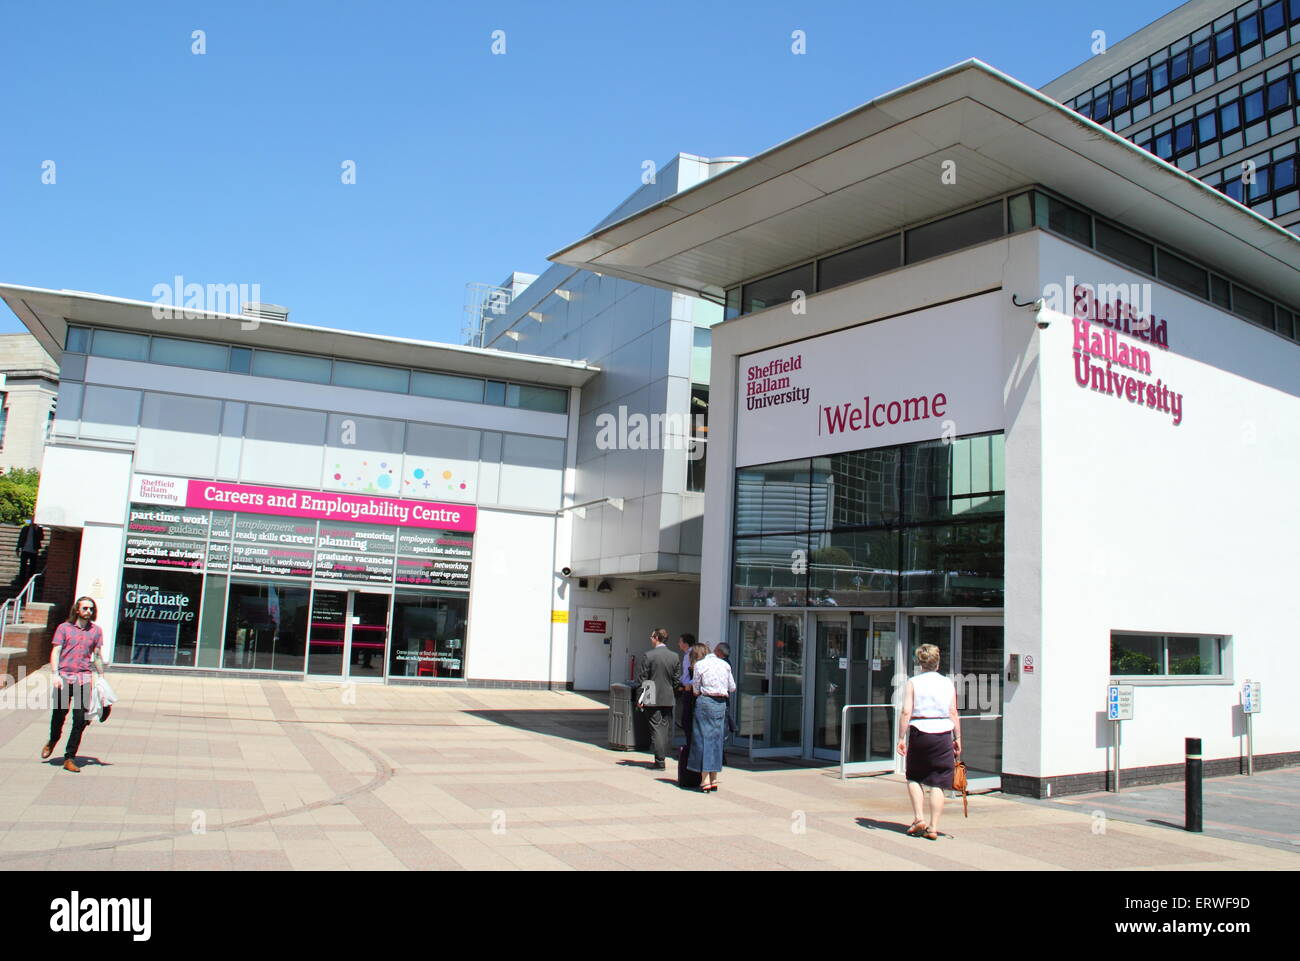 The entrance to Sheffield Hallam University, Howard Street campus, Sheffield, UK looking to the Careers & Employability - Stock Image